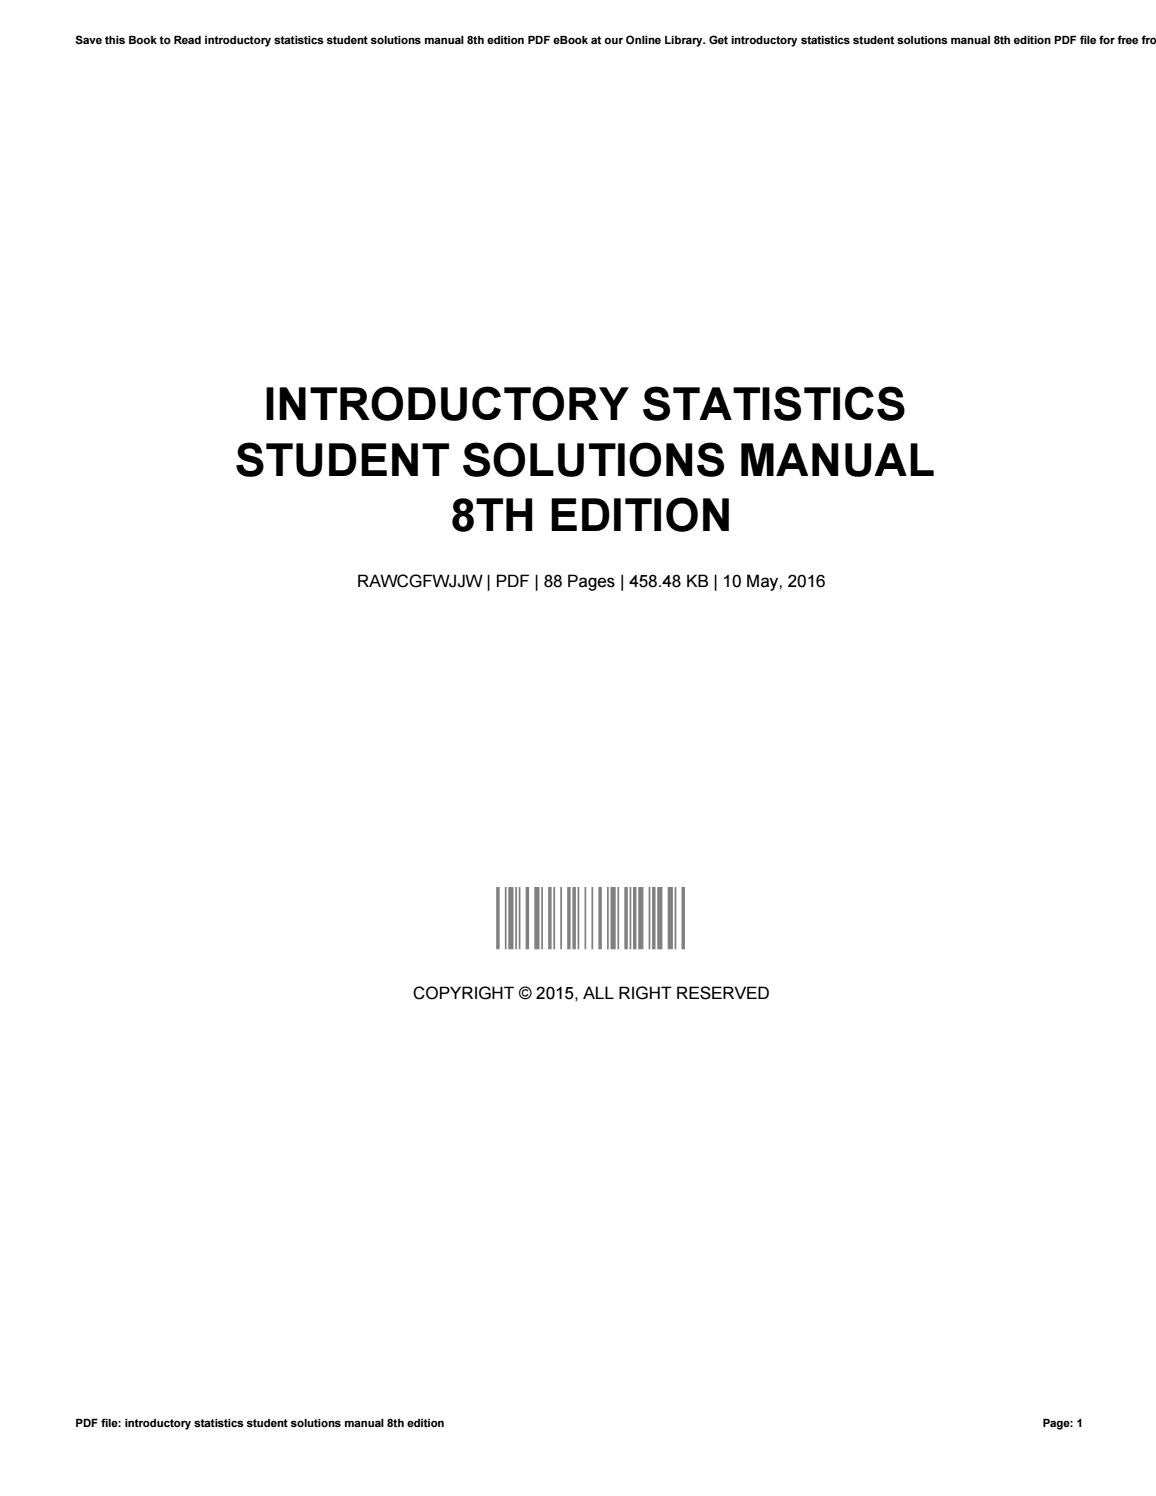 Introductory statistics student solutions manual 8th edition by  GarnetSilva3092 - issuu